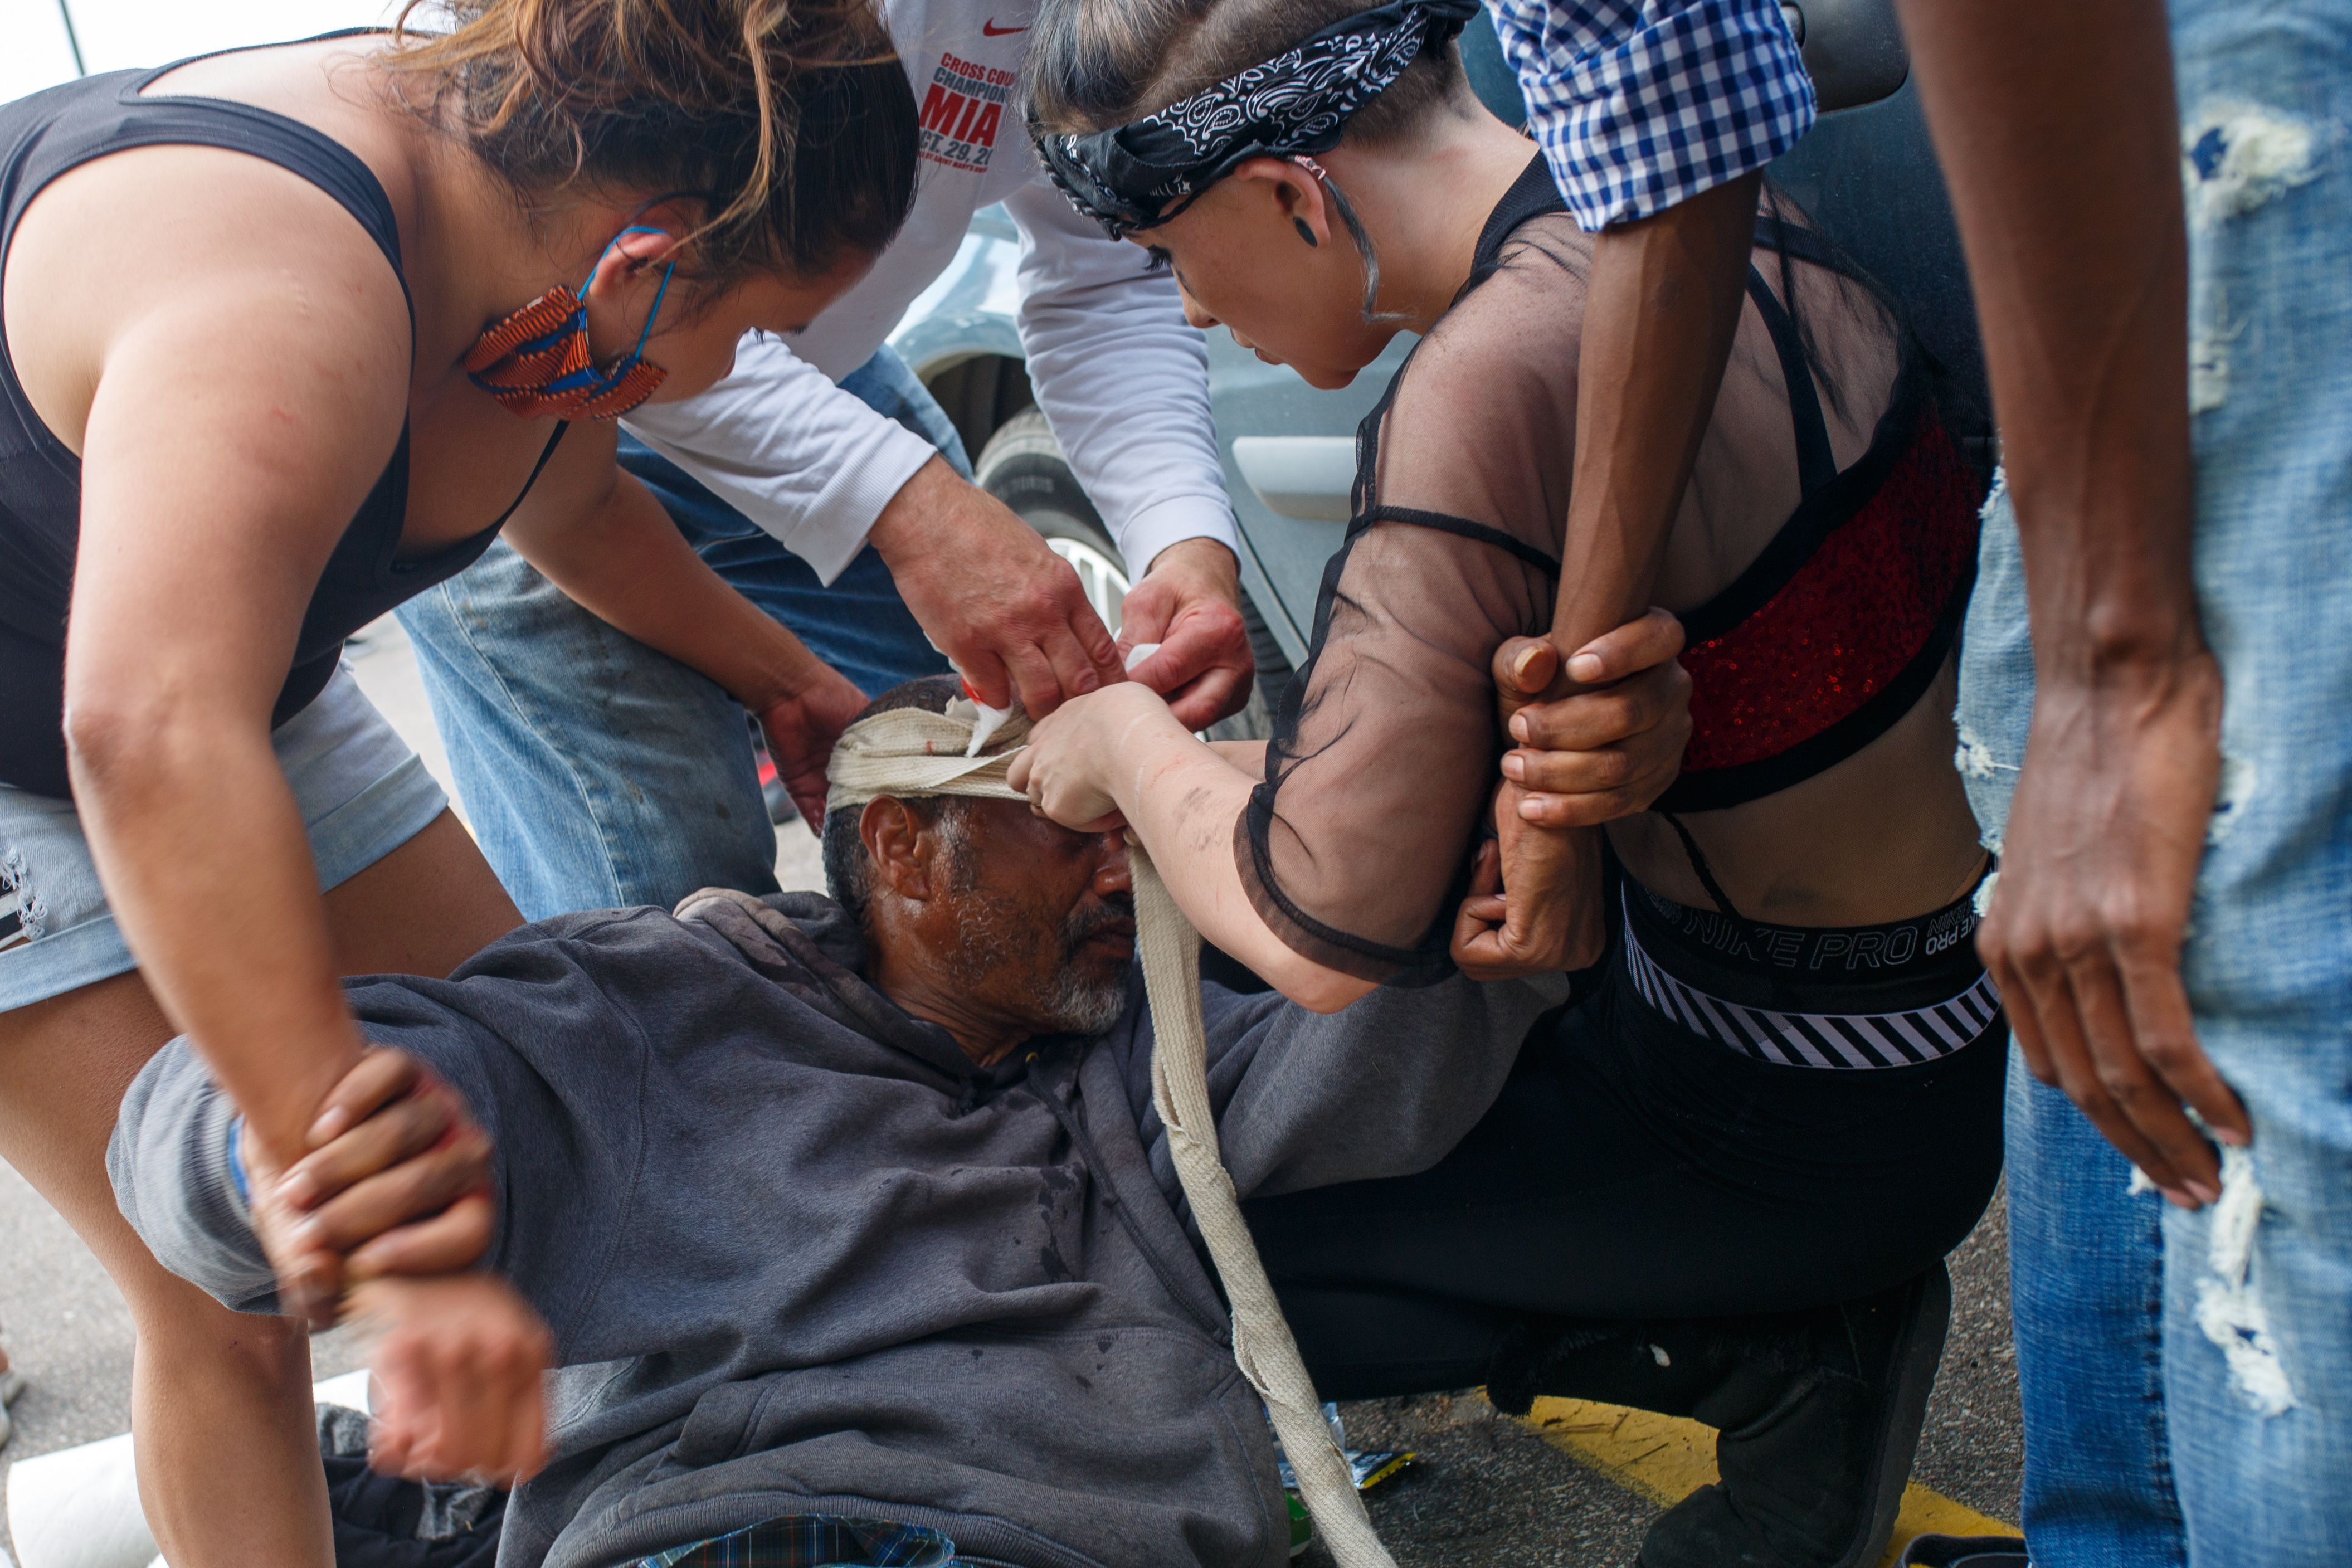 A Somali-American injured man is helped by others as protesters clash with the police during demonstrations against the death of George Floyd outside the 3rd Precinct Police Precinct on May 27, 2020 in Minneapolis, Minnesota. (KEREM YUCEL/AFP via Getty Images)